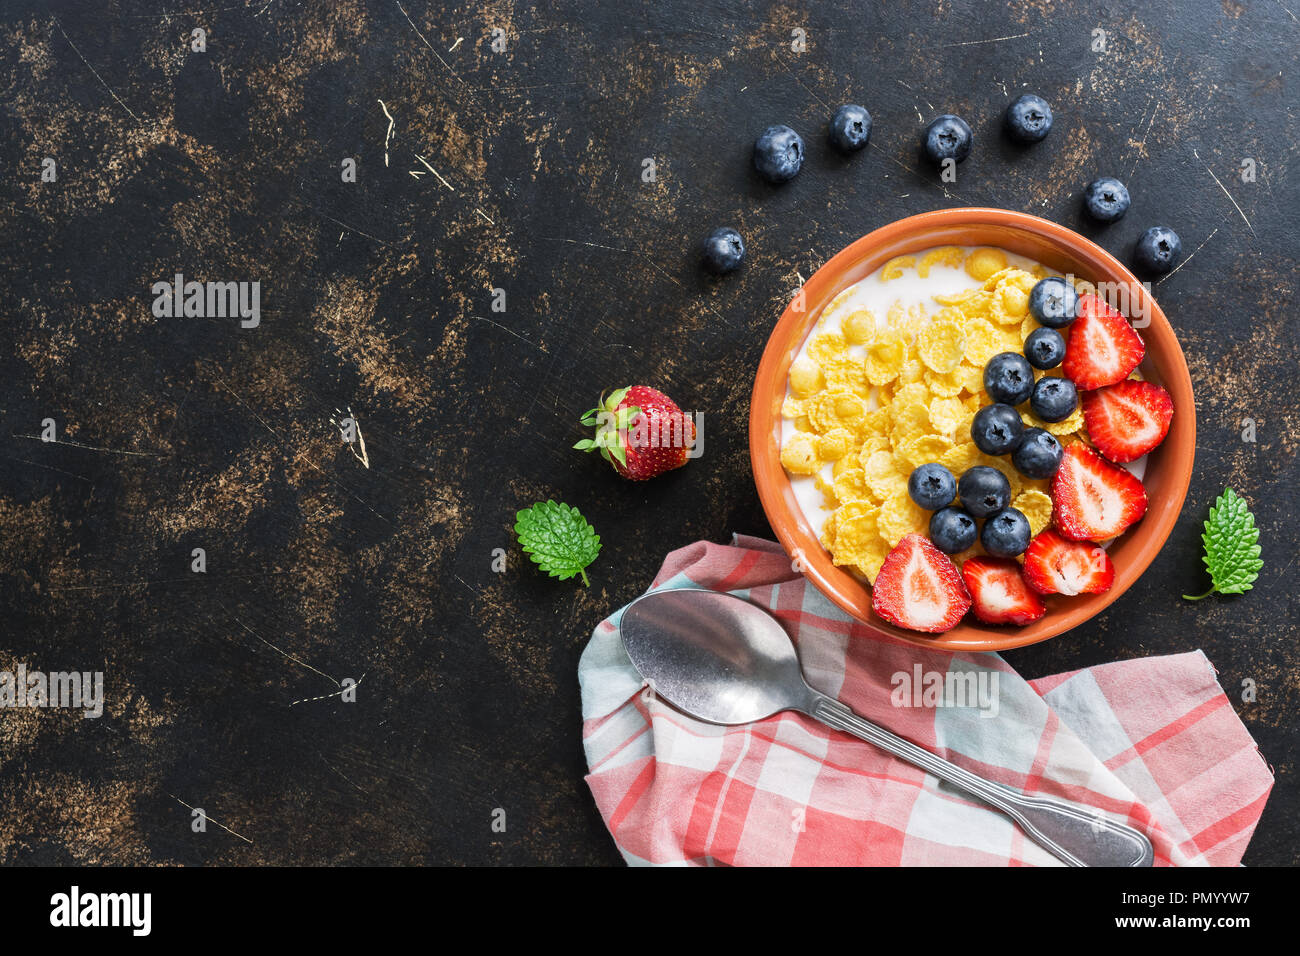 Corn flakes with milk, strawberries and blueberries on a dark background. View from above, flat lay - Stock Image